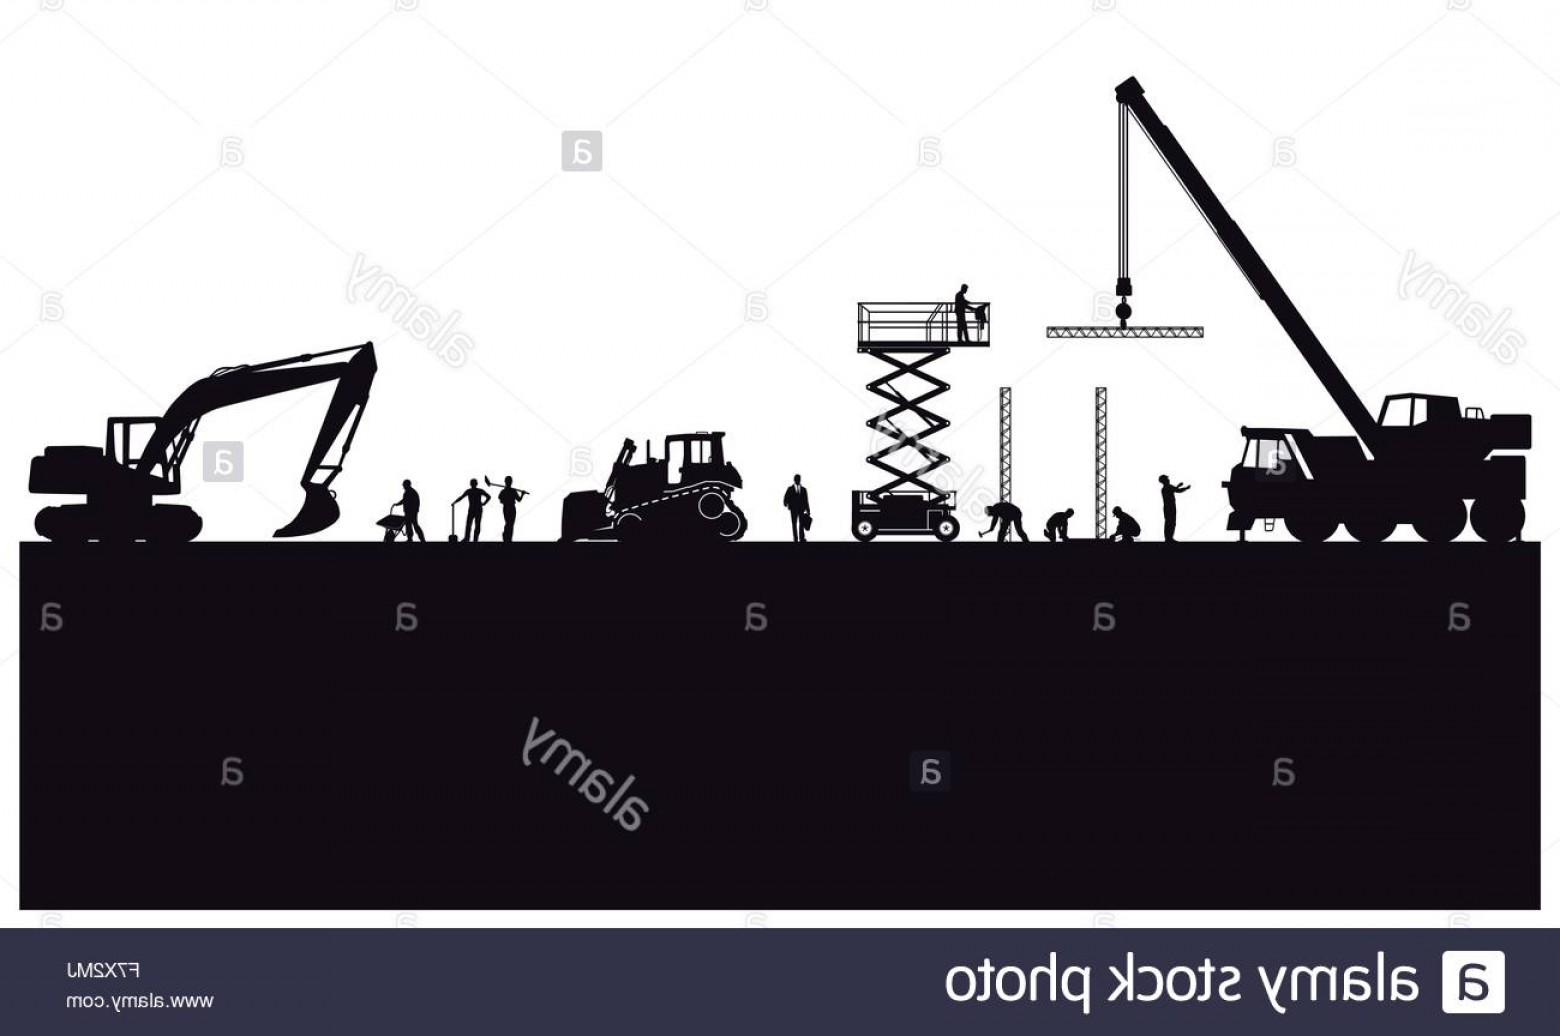 Vector Graphic Of Civil Engineering: Stock Photo Building Construction And Civil Engineering